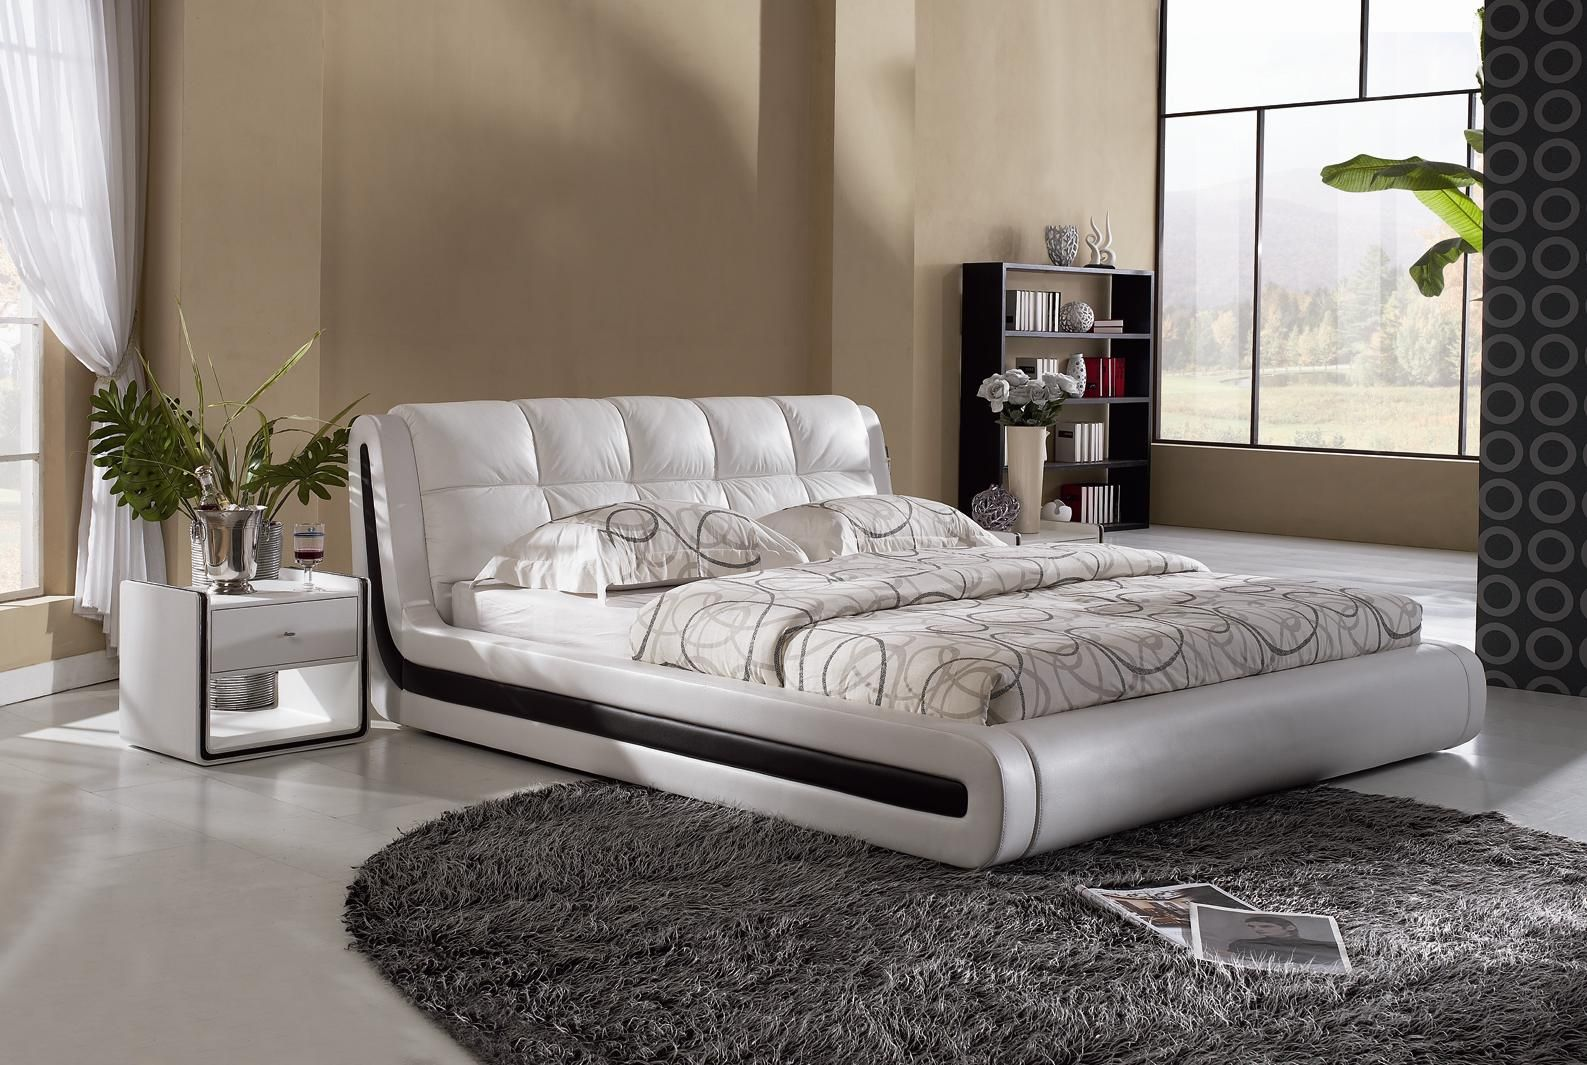 Modern bed designs home interior designer adult bedroom for Different bedroom styles